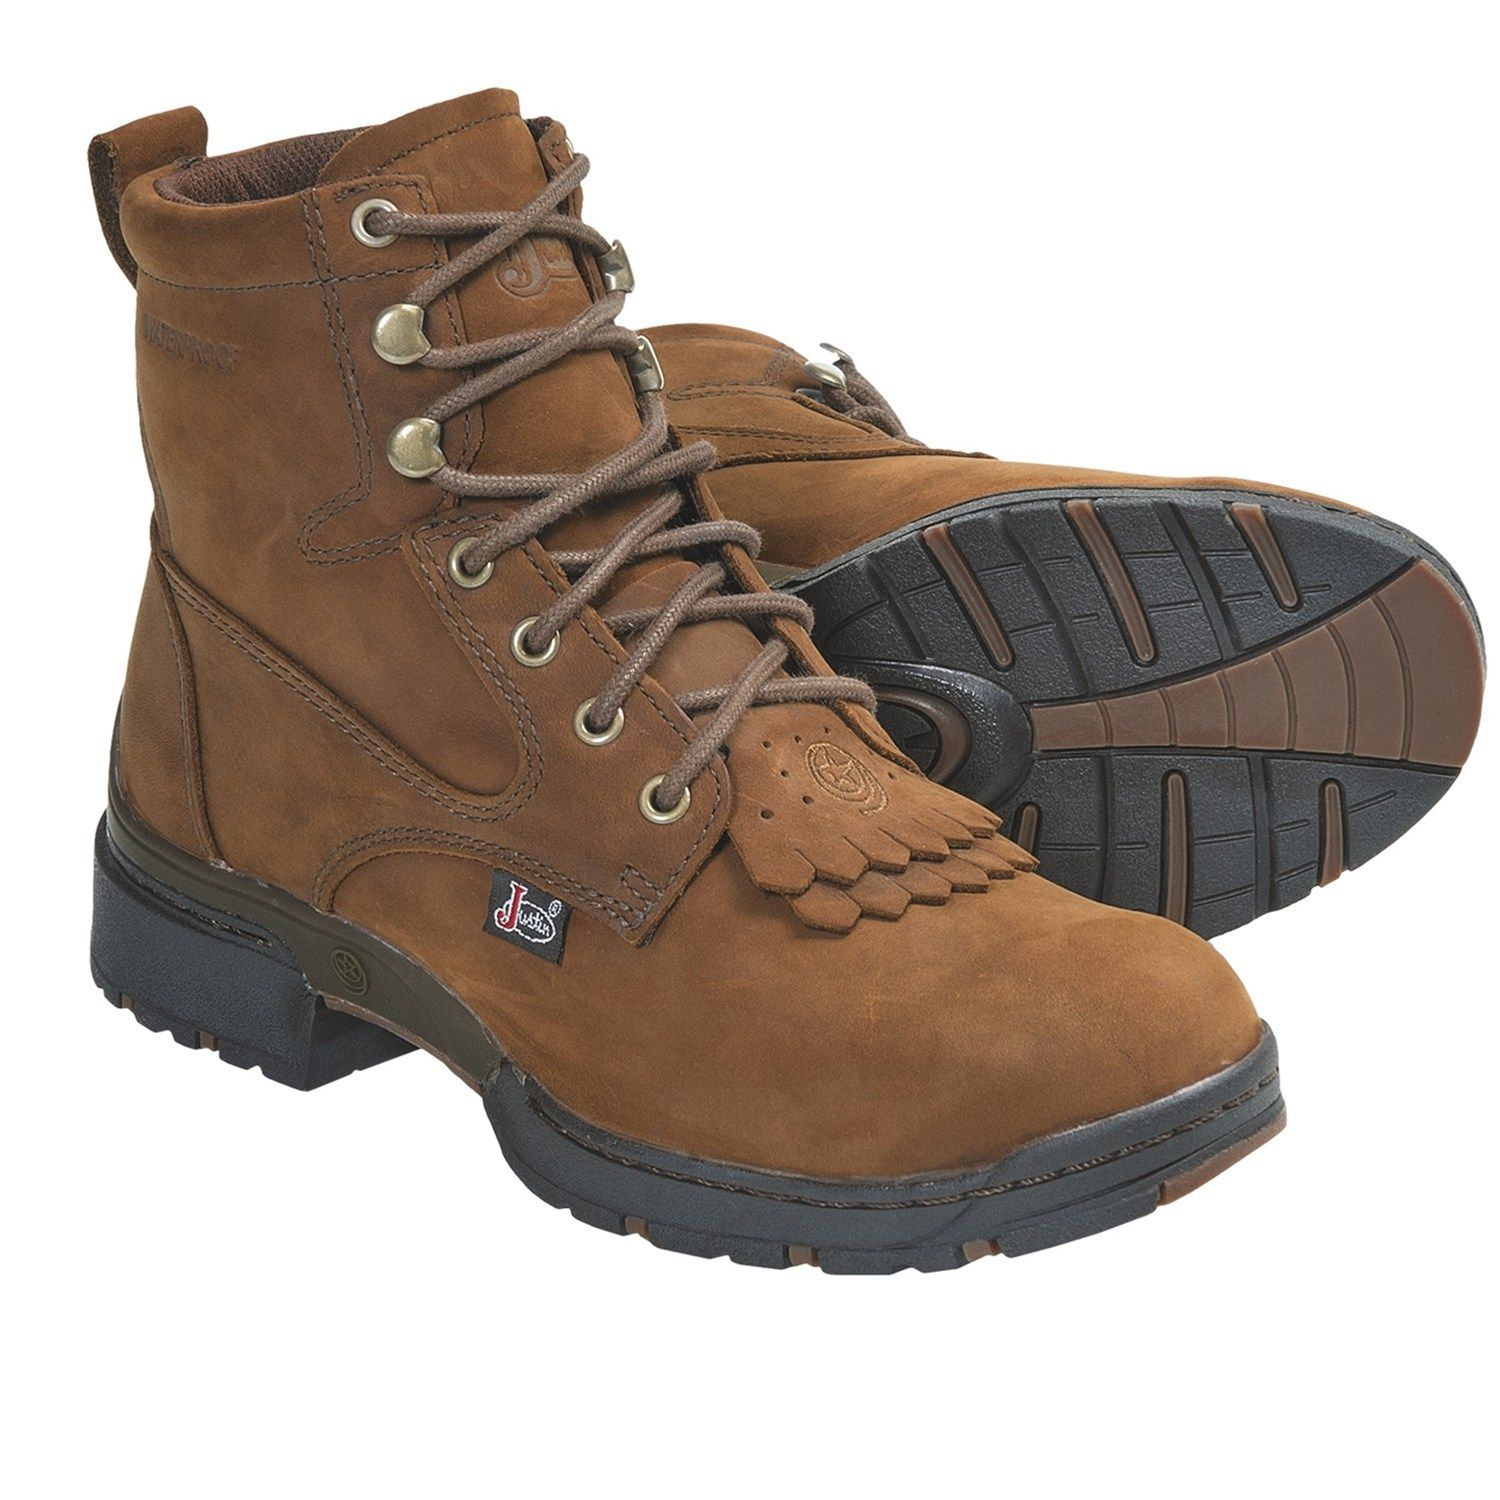 Justin Boots Coffee Westerner Lace Up Boots Waterproof J17 Toe For Women Boots Justin Boots Lace Up Boots